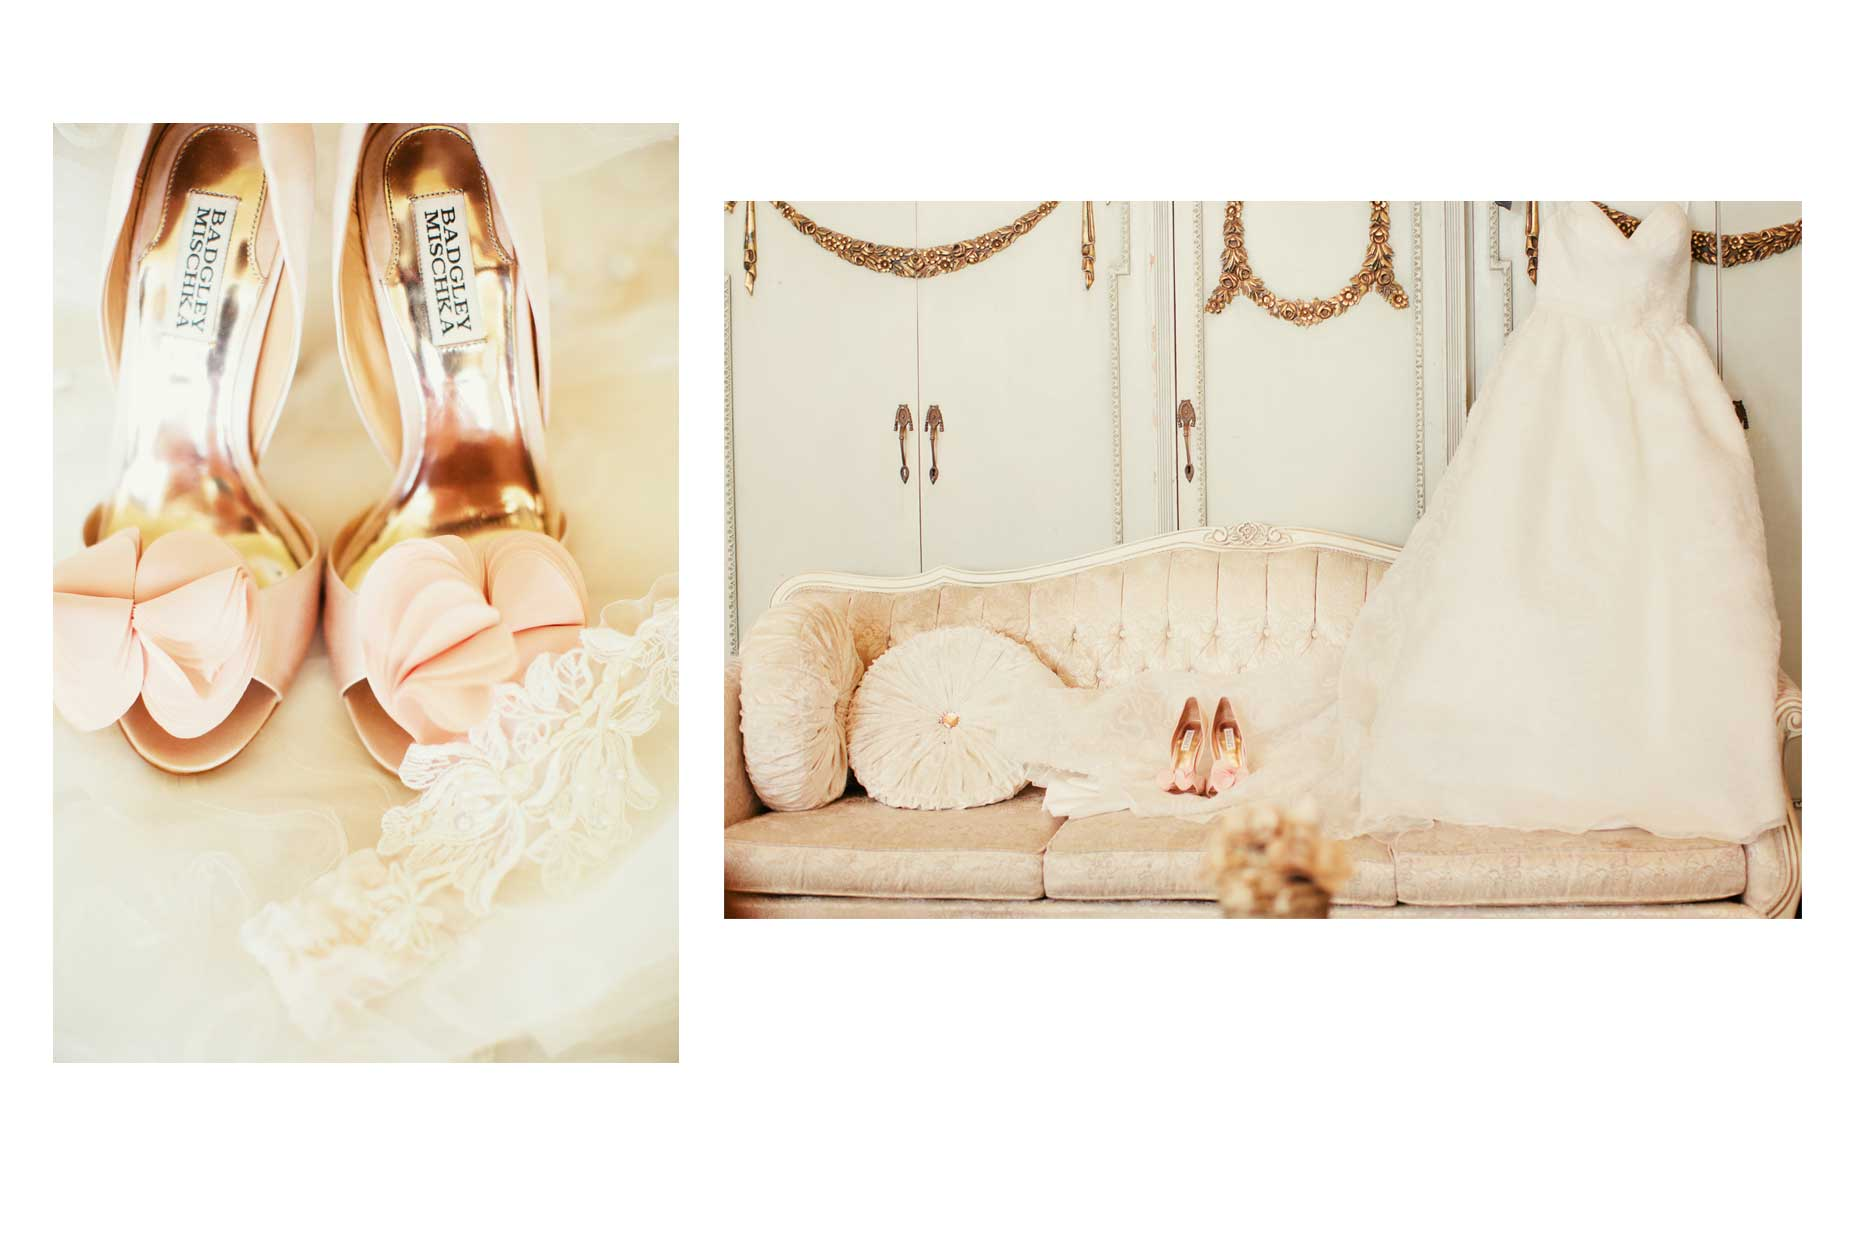 twin oaks house wedding photographer 28-pierre-olivier-photography-_-wedding-dress-and-shoes